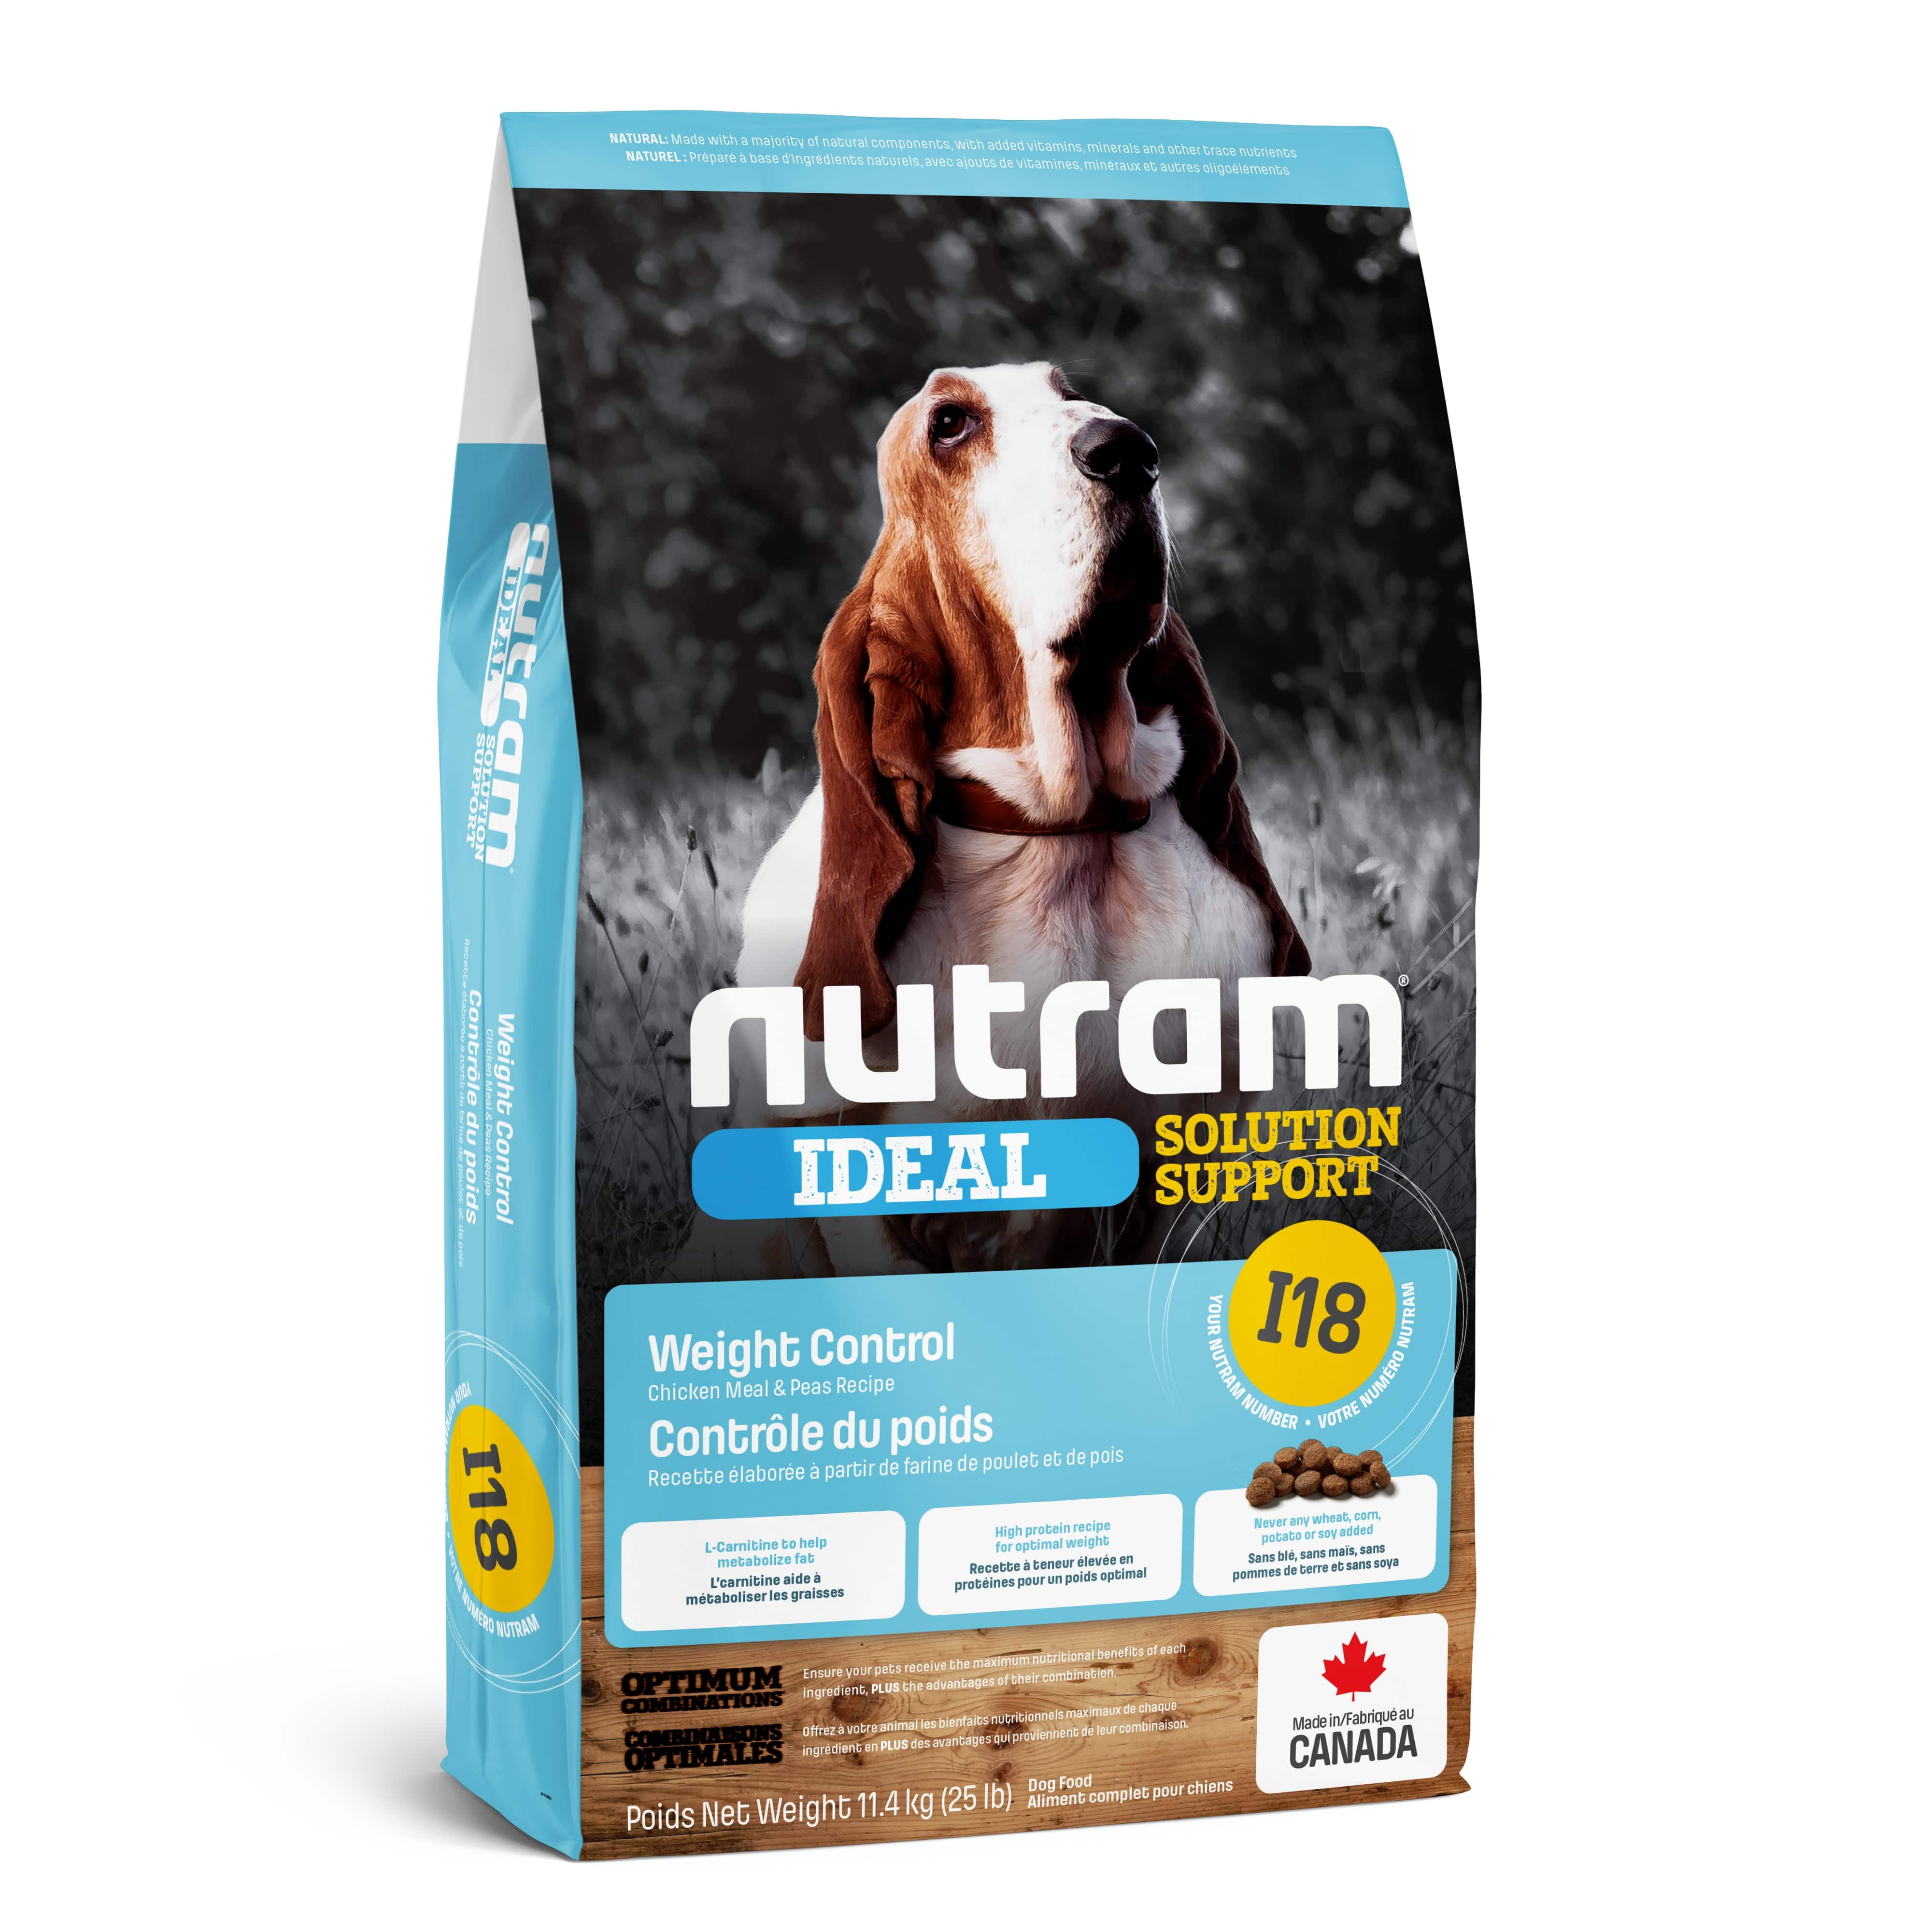 I18 Nutram Ideal Solution Support® Weight Control Dog Food